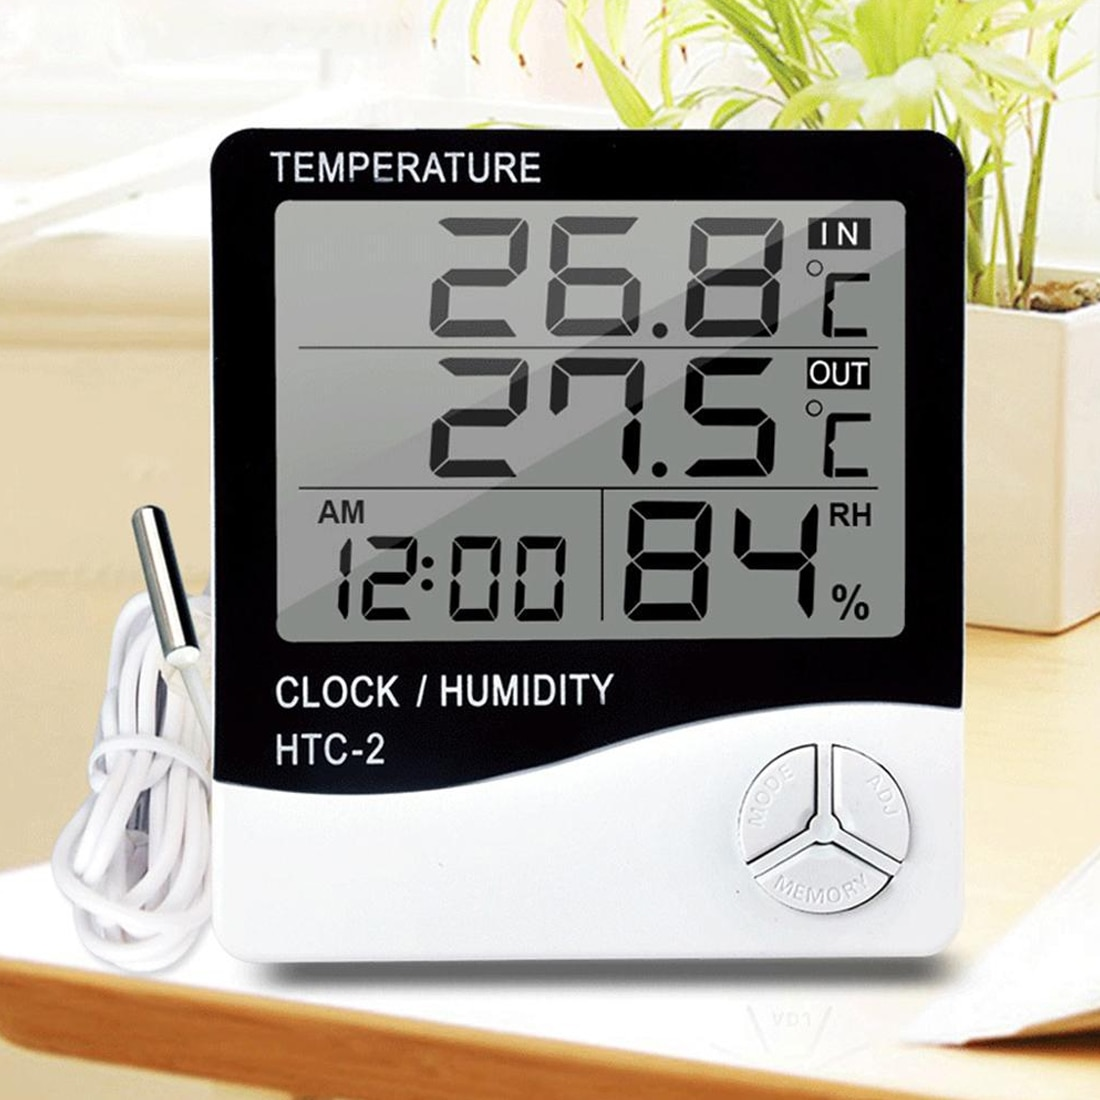 Portable LCD Digital Temperature Humidity Meter -1 /-2 Indoor Outdoor Hygrometer Thermometer Tester